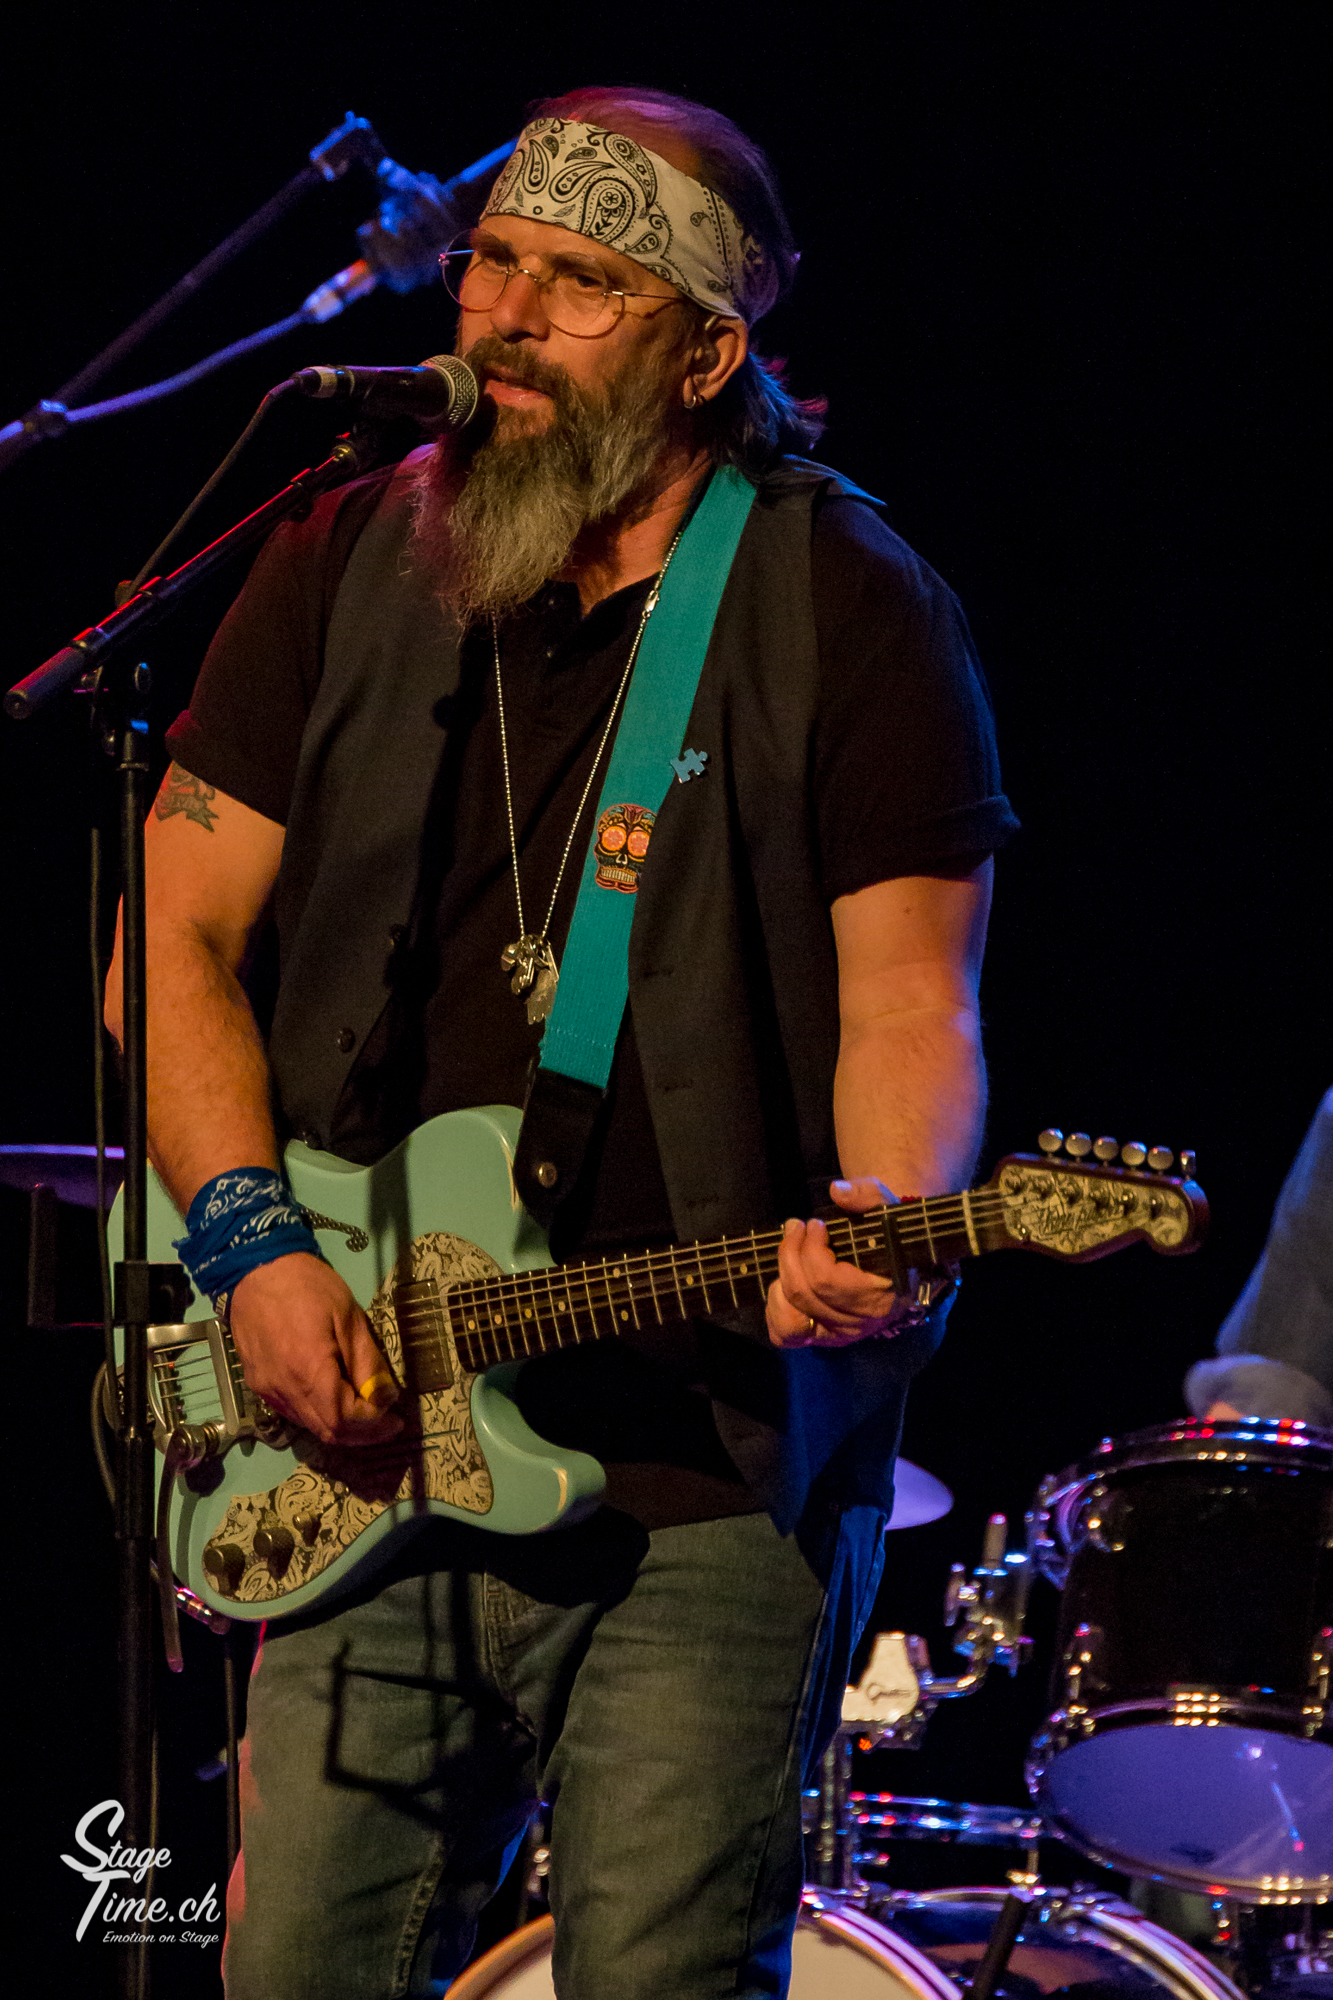 Steve_Earle_&_the_Dukes-4